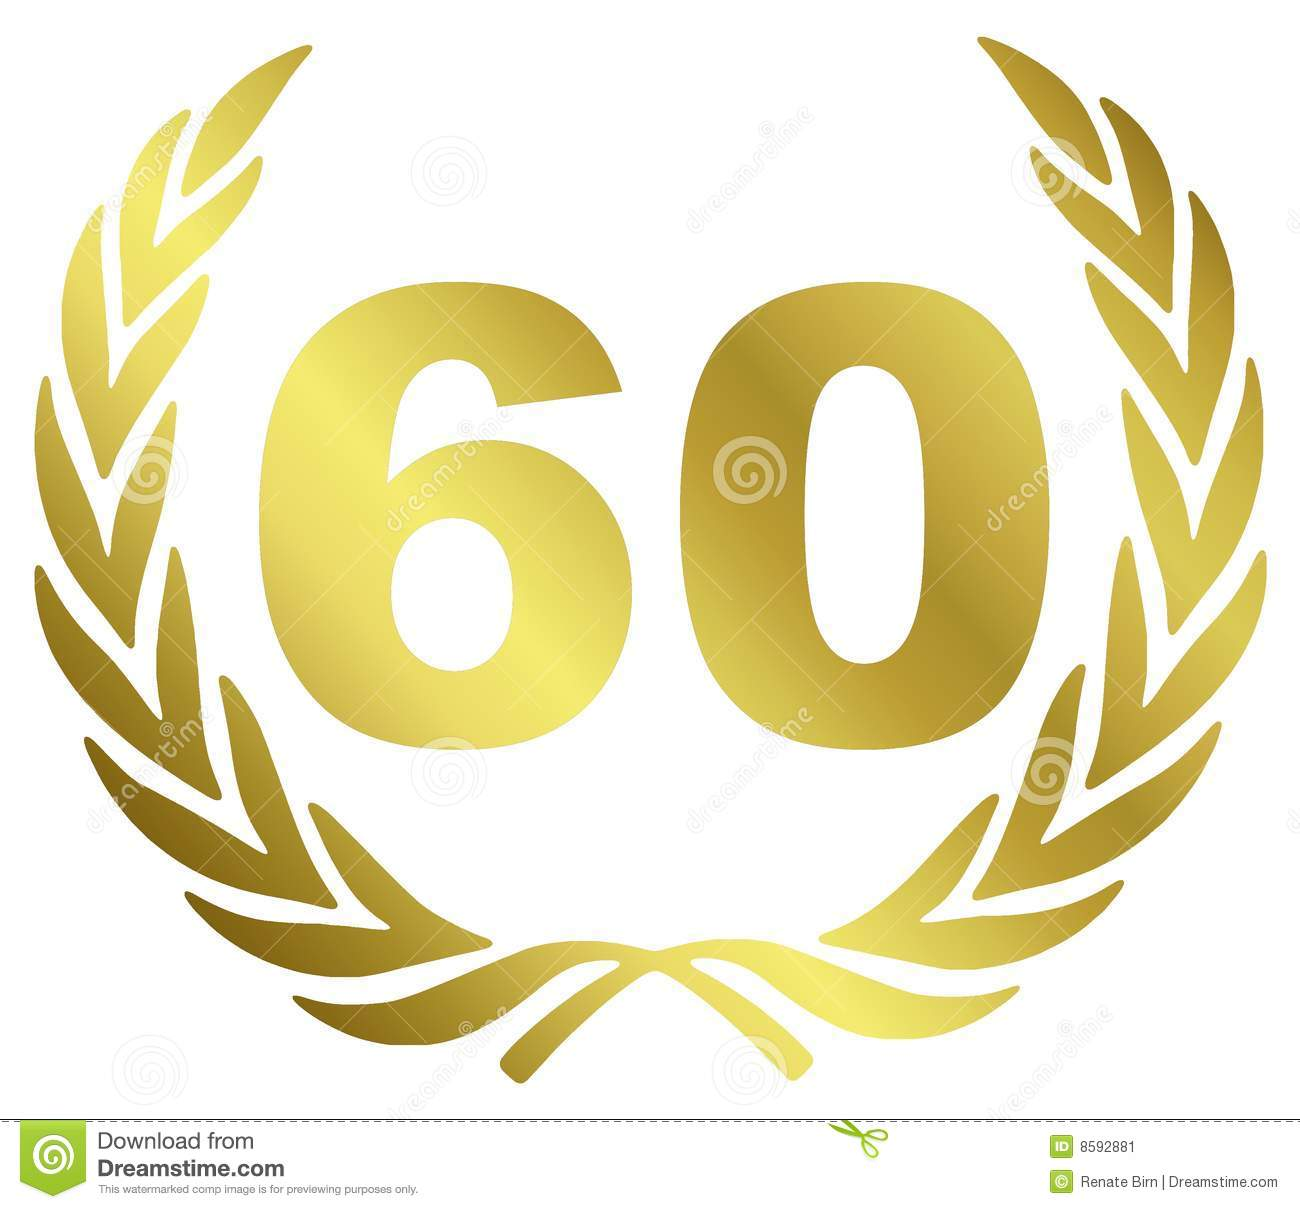 60 Anniversary illustration with laurel wreath.